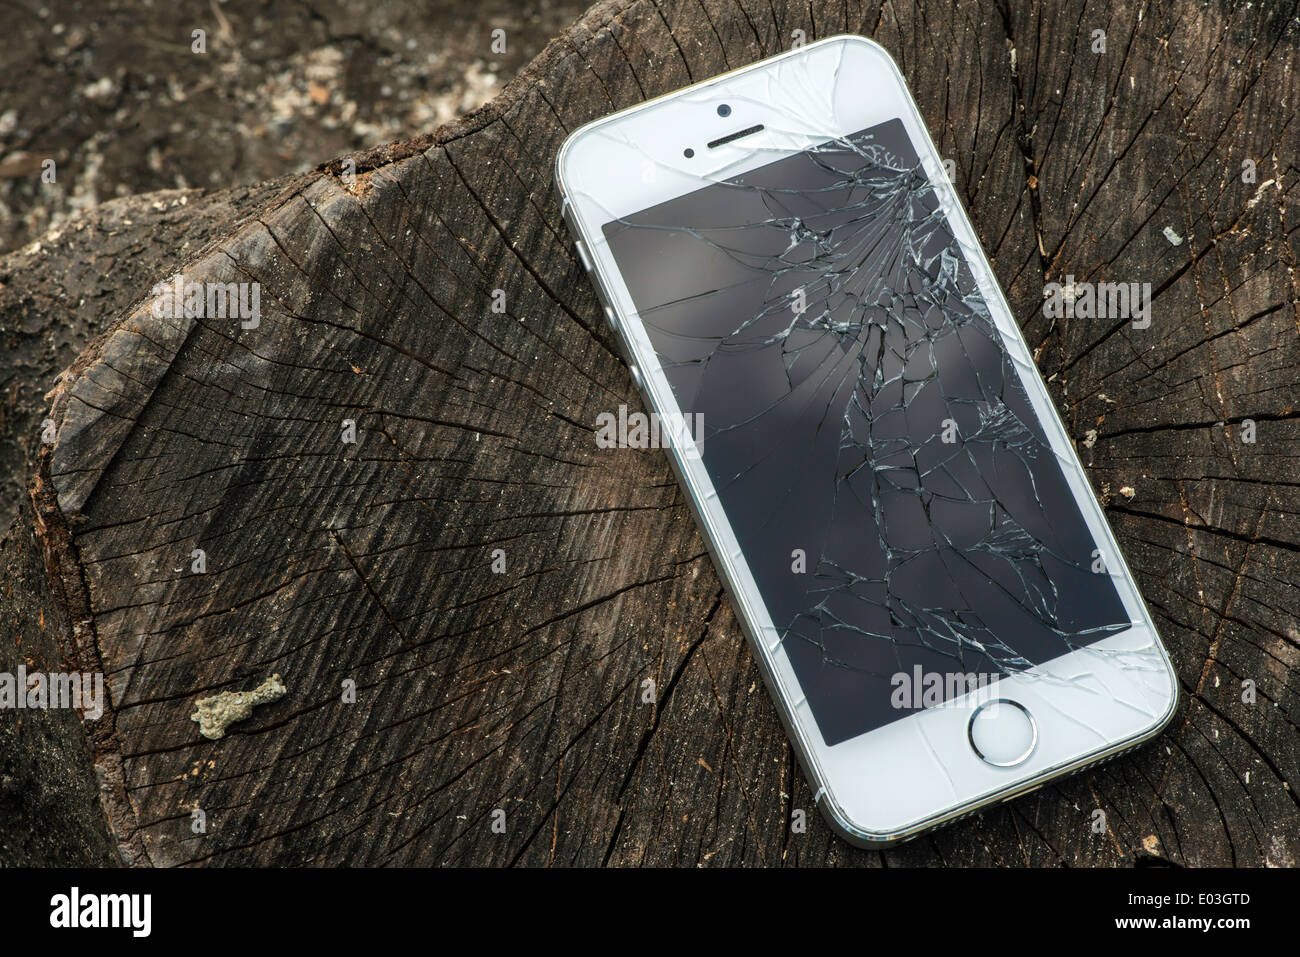 Broken white iphone glass on wood - Stock Image